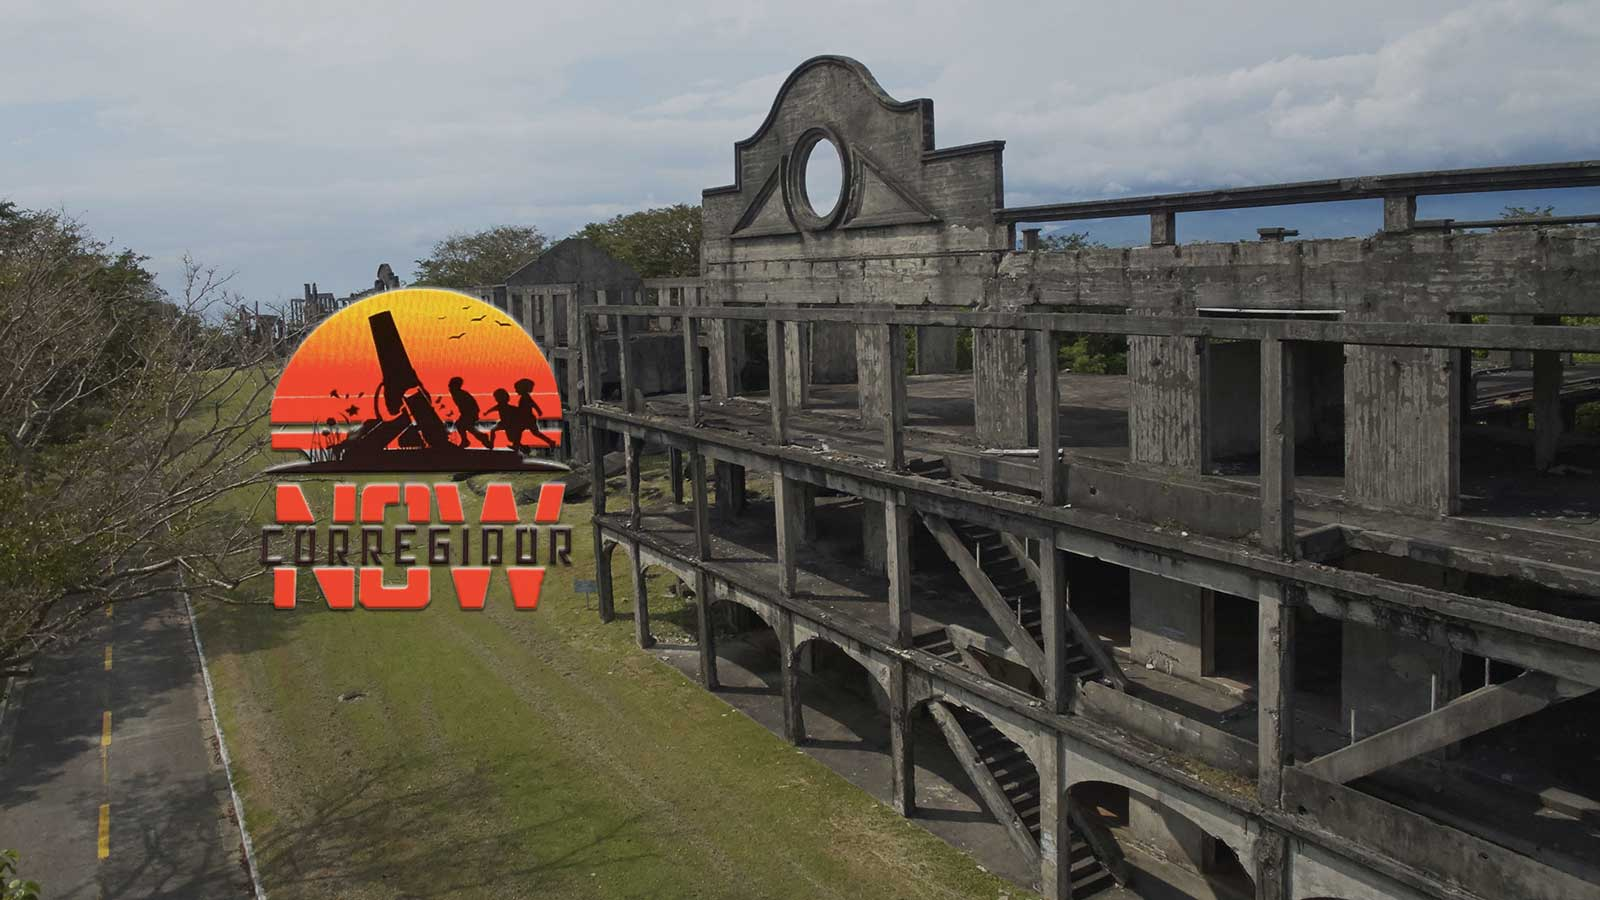 Relive the History of Corregidor Now